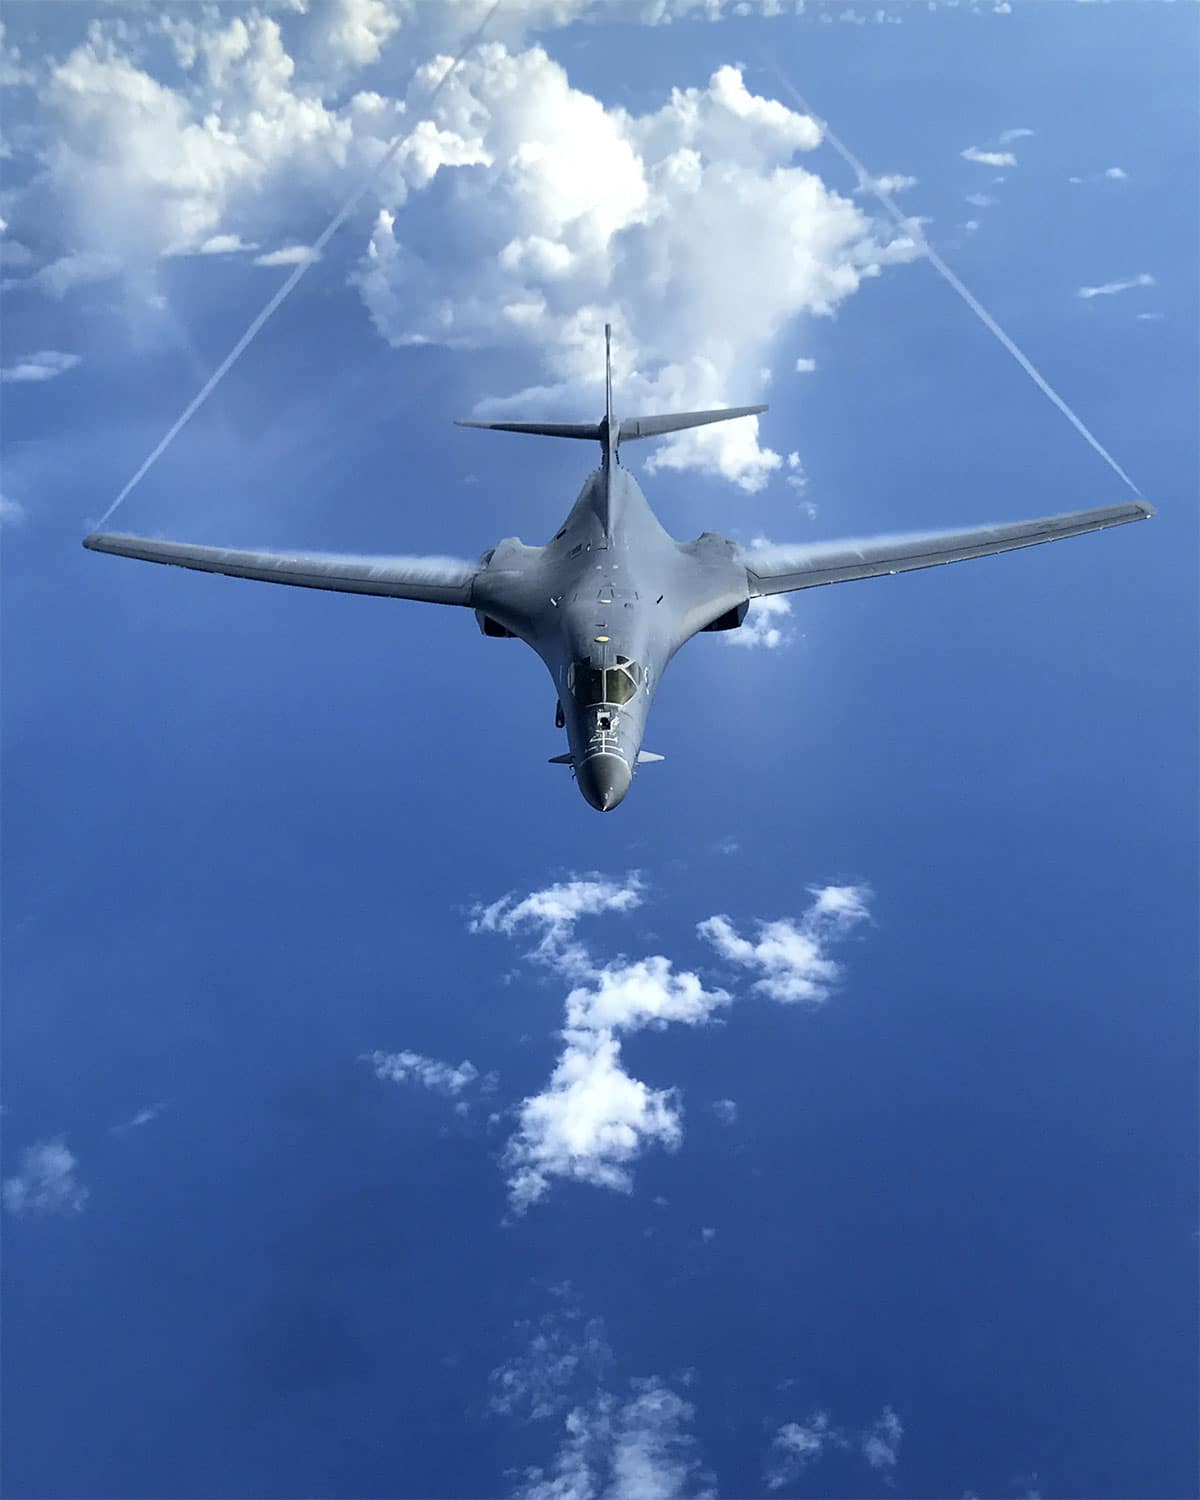 A U.S. Air Force B-1B Lancer, assigned to the 37th Expeditionary Bomb Squadron, deployed from Ellsworth Air Force Base (AFB), S.D., flies over the South Pacific.